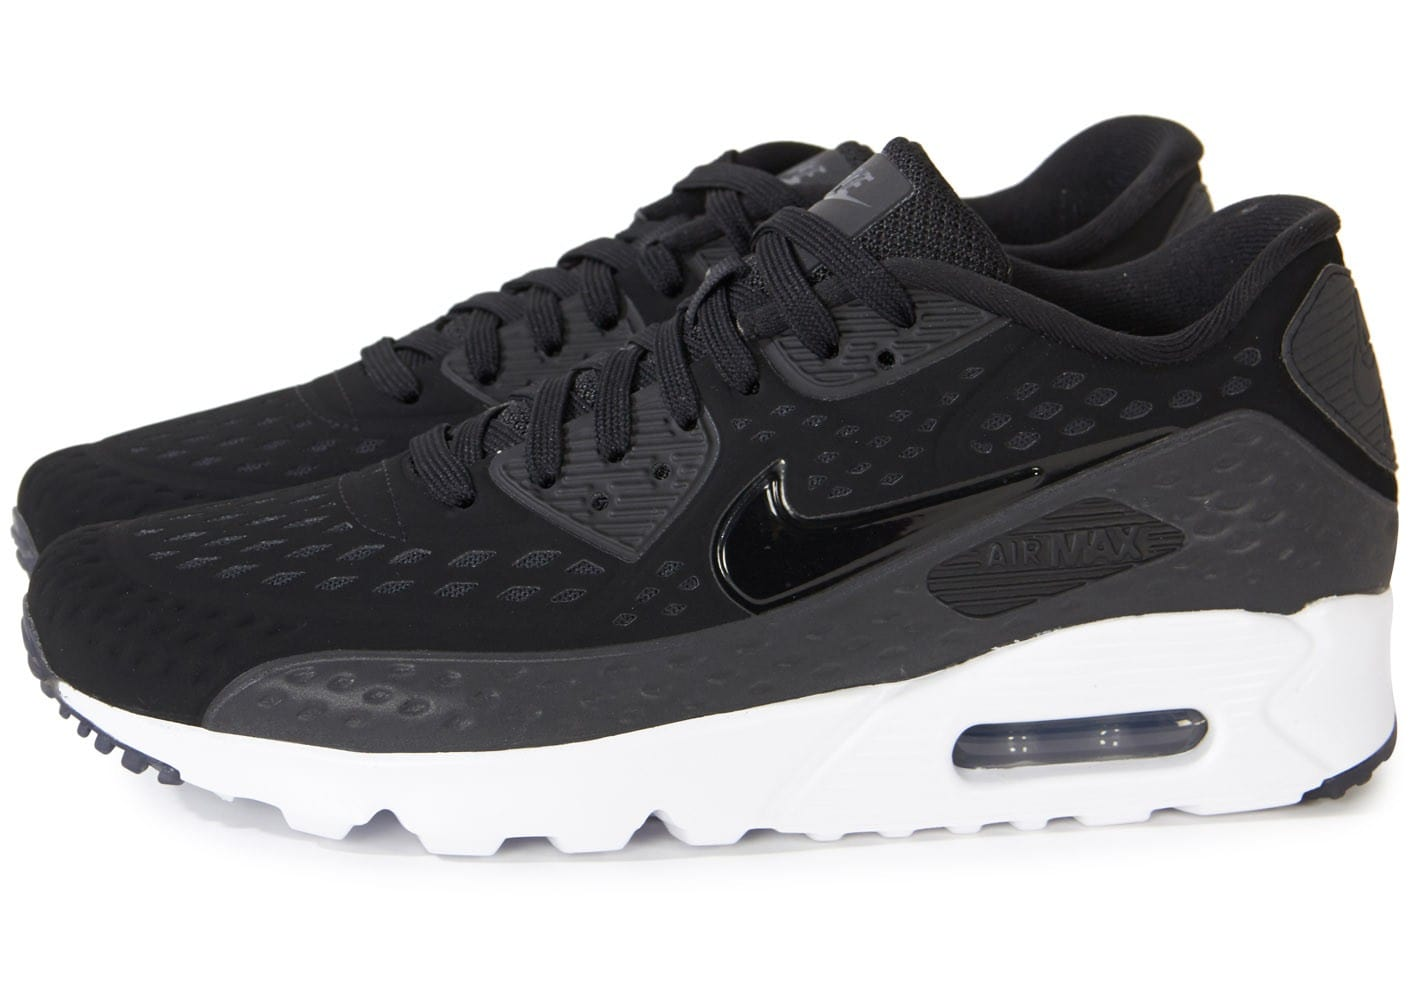 nike air max 90 ultra br noire chaussures homme chausport. Black Bedroom Furniture Sets. Home Design Ideas